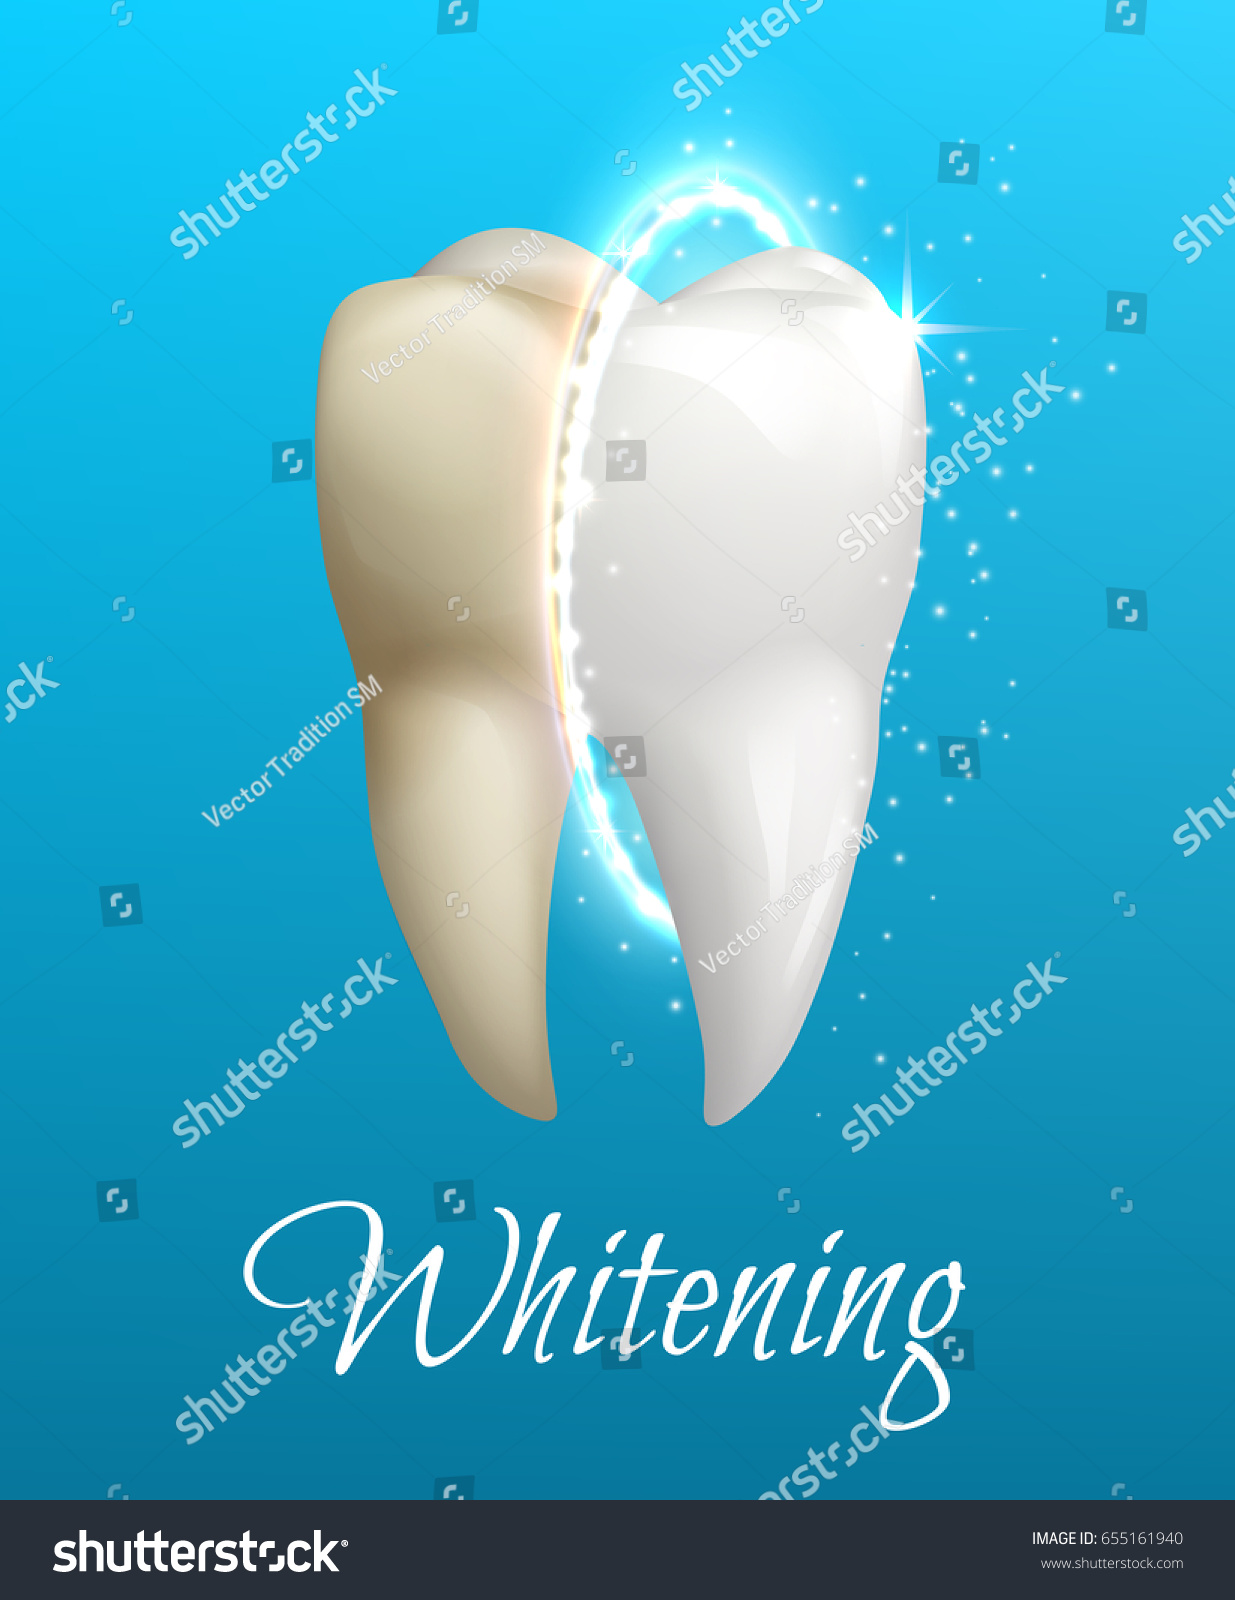 Whitening treatment as is indicated by comparison to the whitening - Teeth Whitening 3d Concept Comparison Of Clean And Dirty Tooth Before And After Whitening Treatment